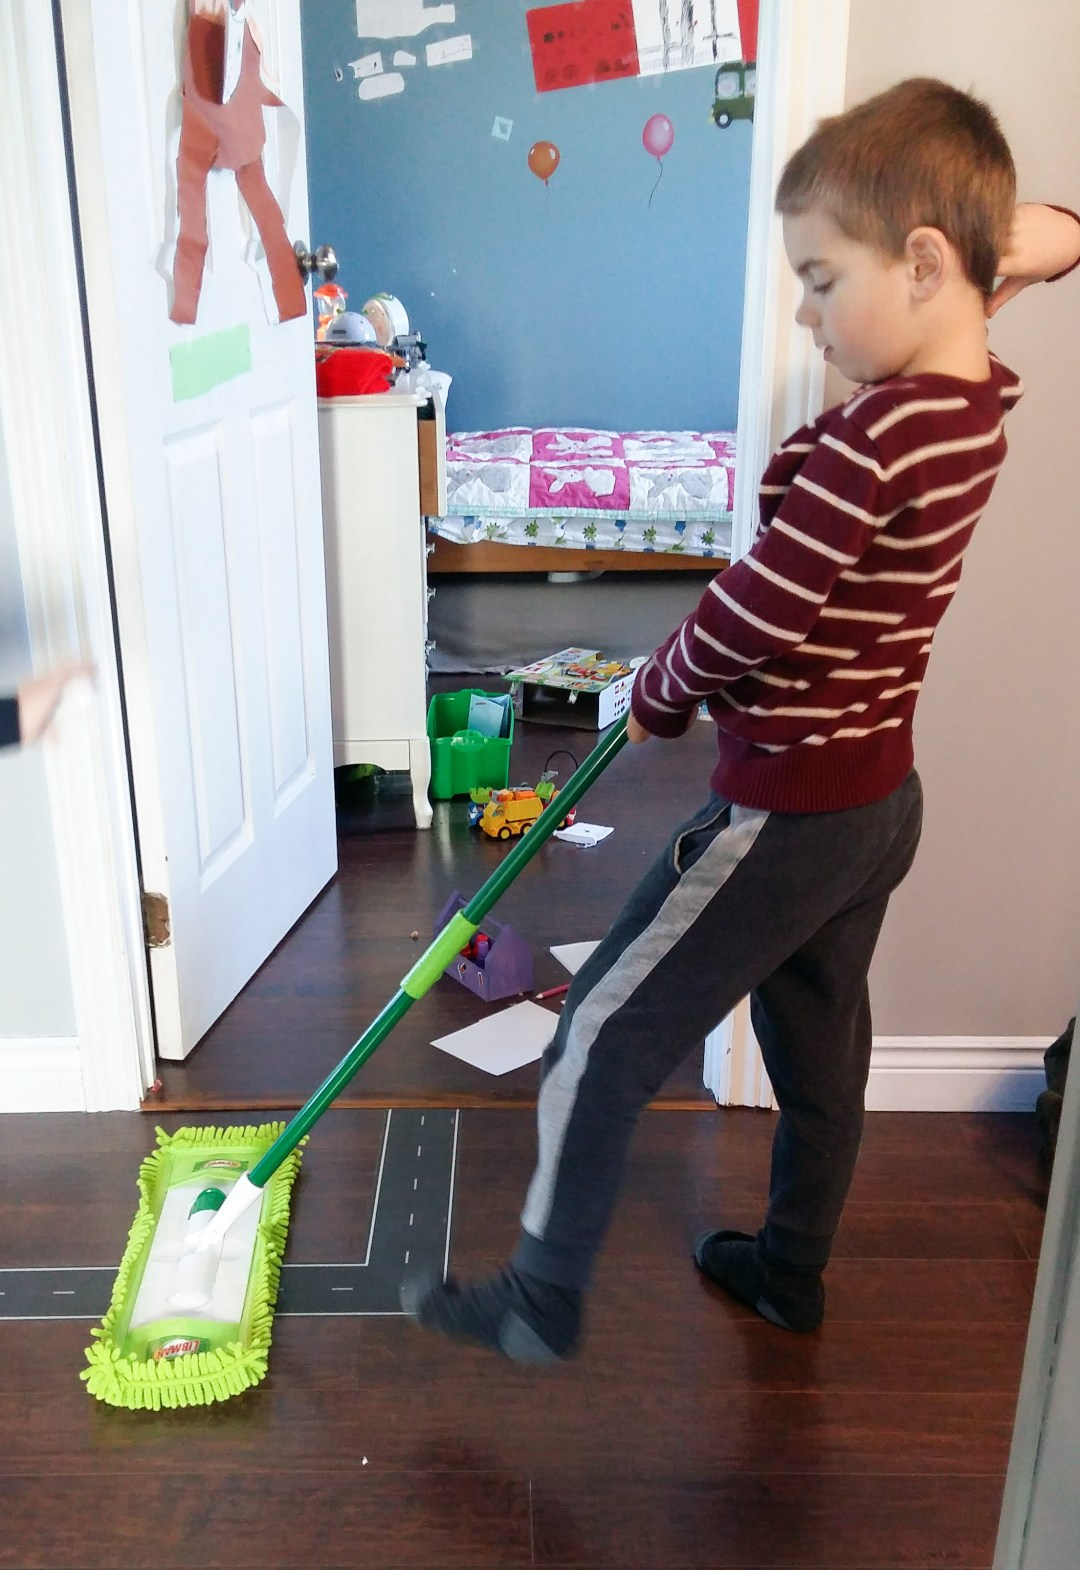 the Libman dust mop easily glides across the floor for quick cleaning!